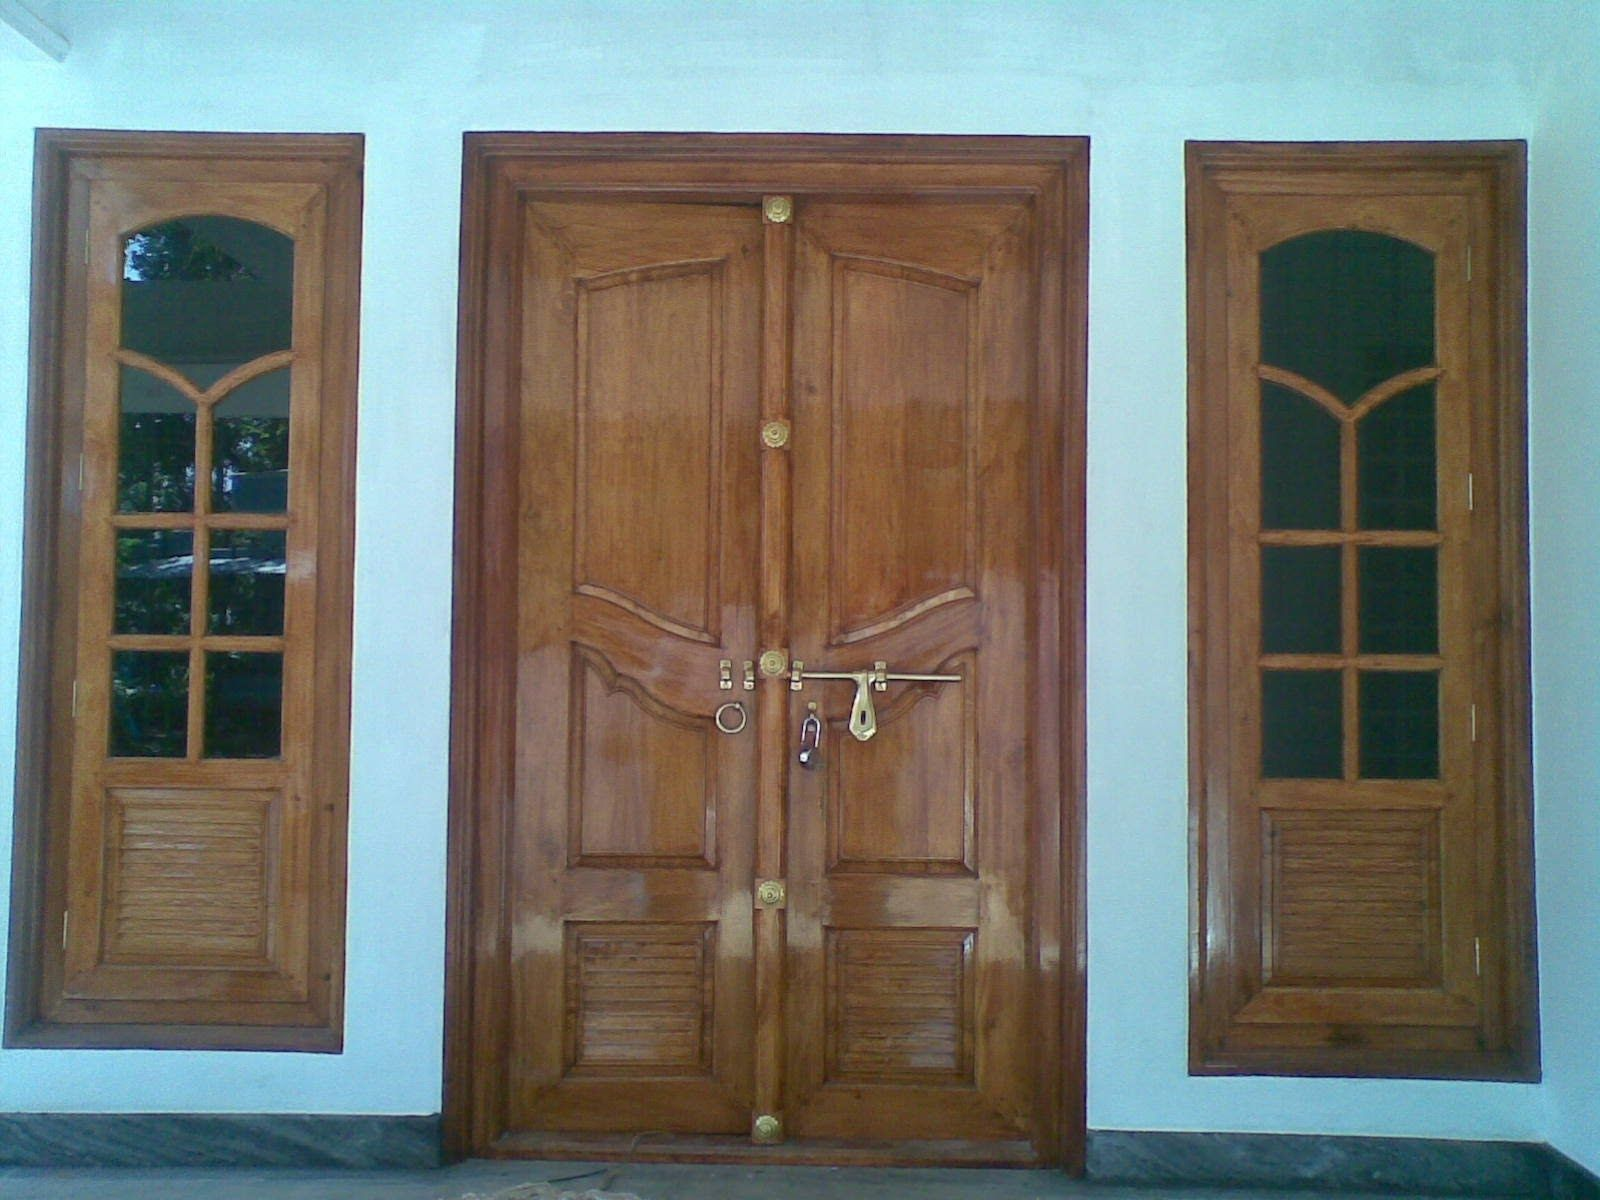 Door Designs Sri Lanka Photo Gallery New Model Front Door Design Хочу здесь побывать